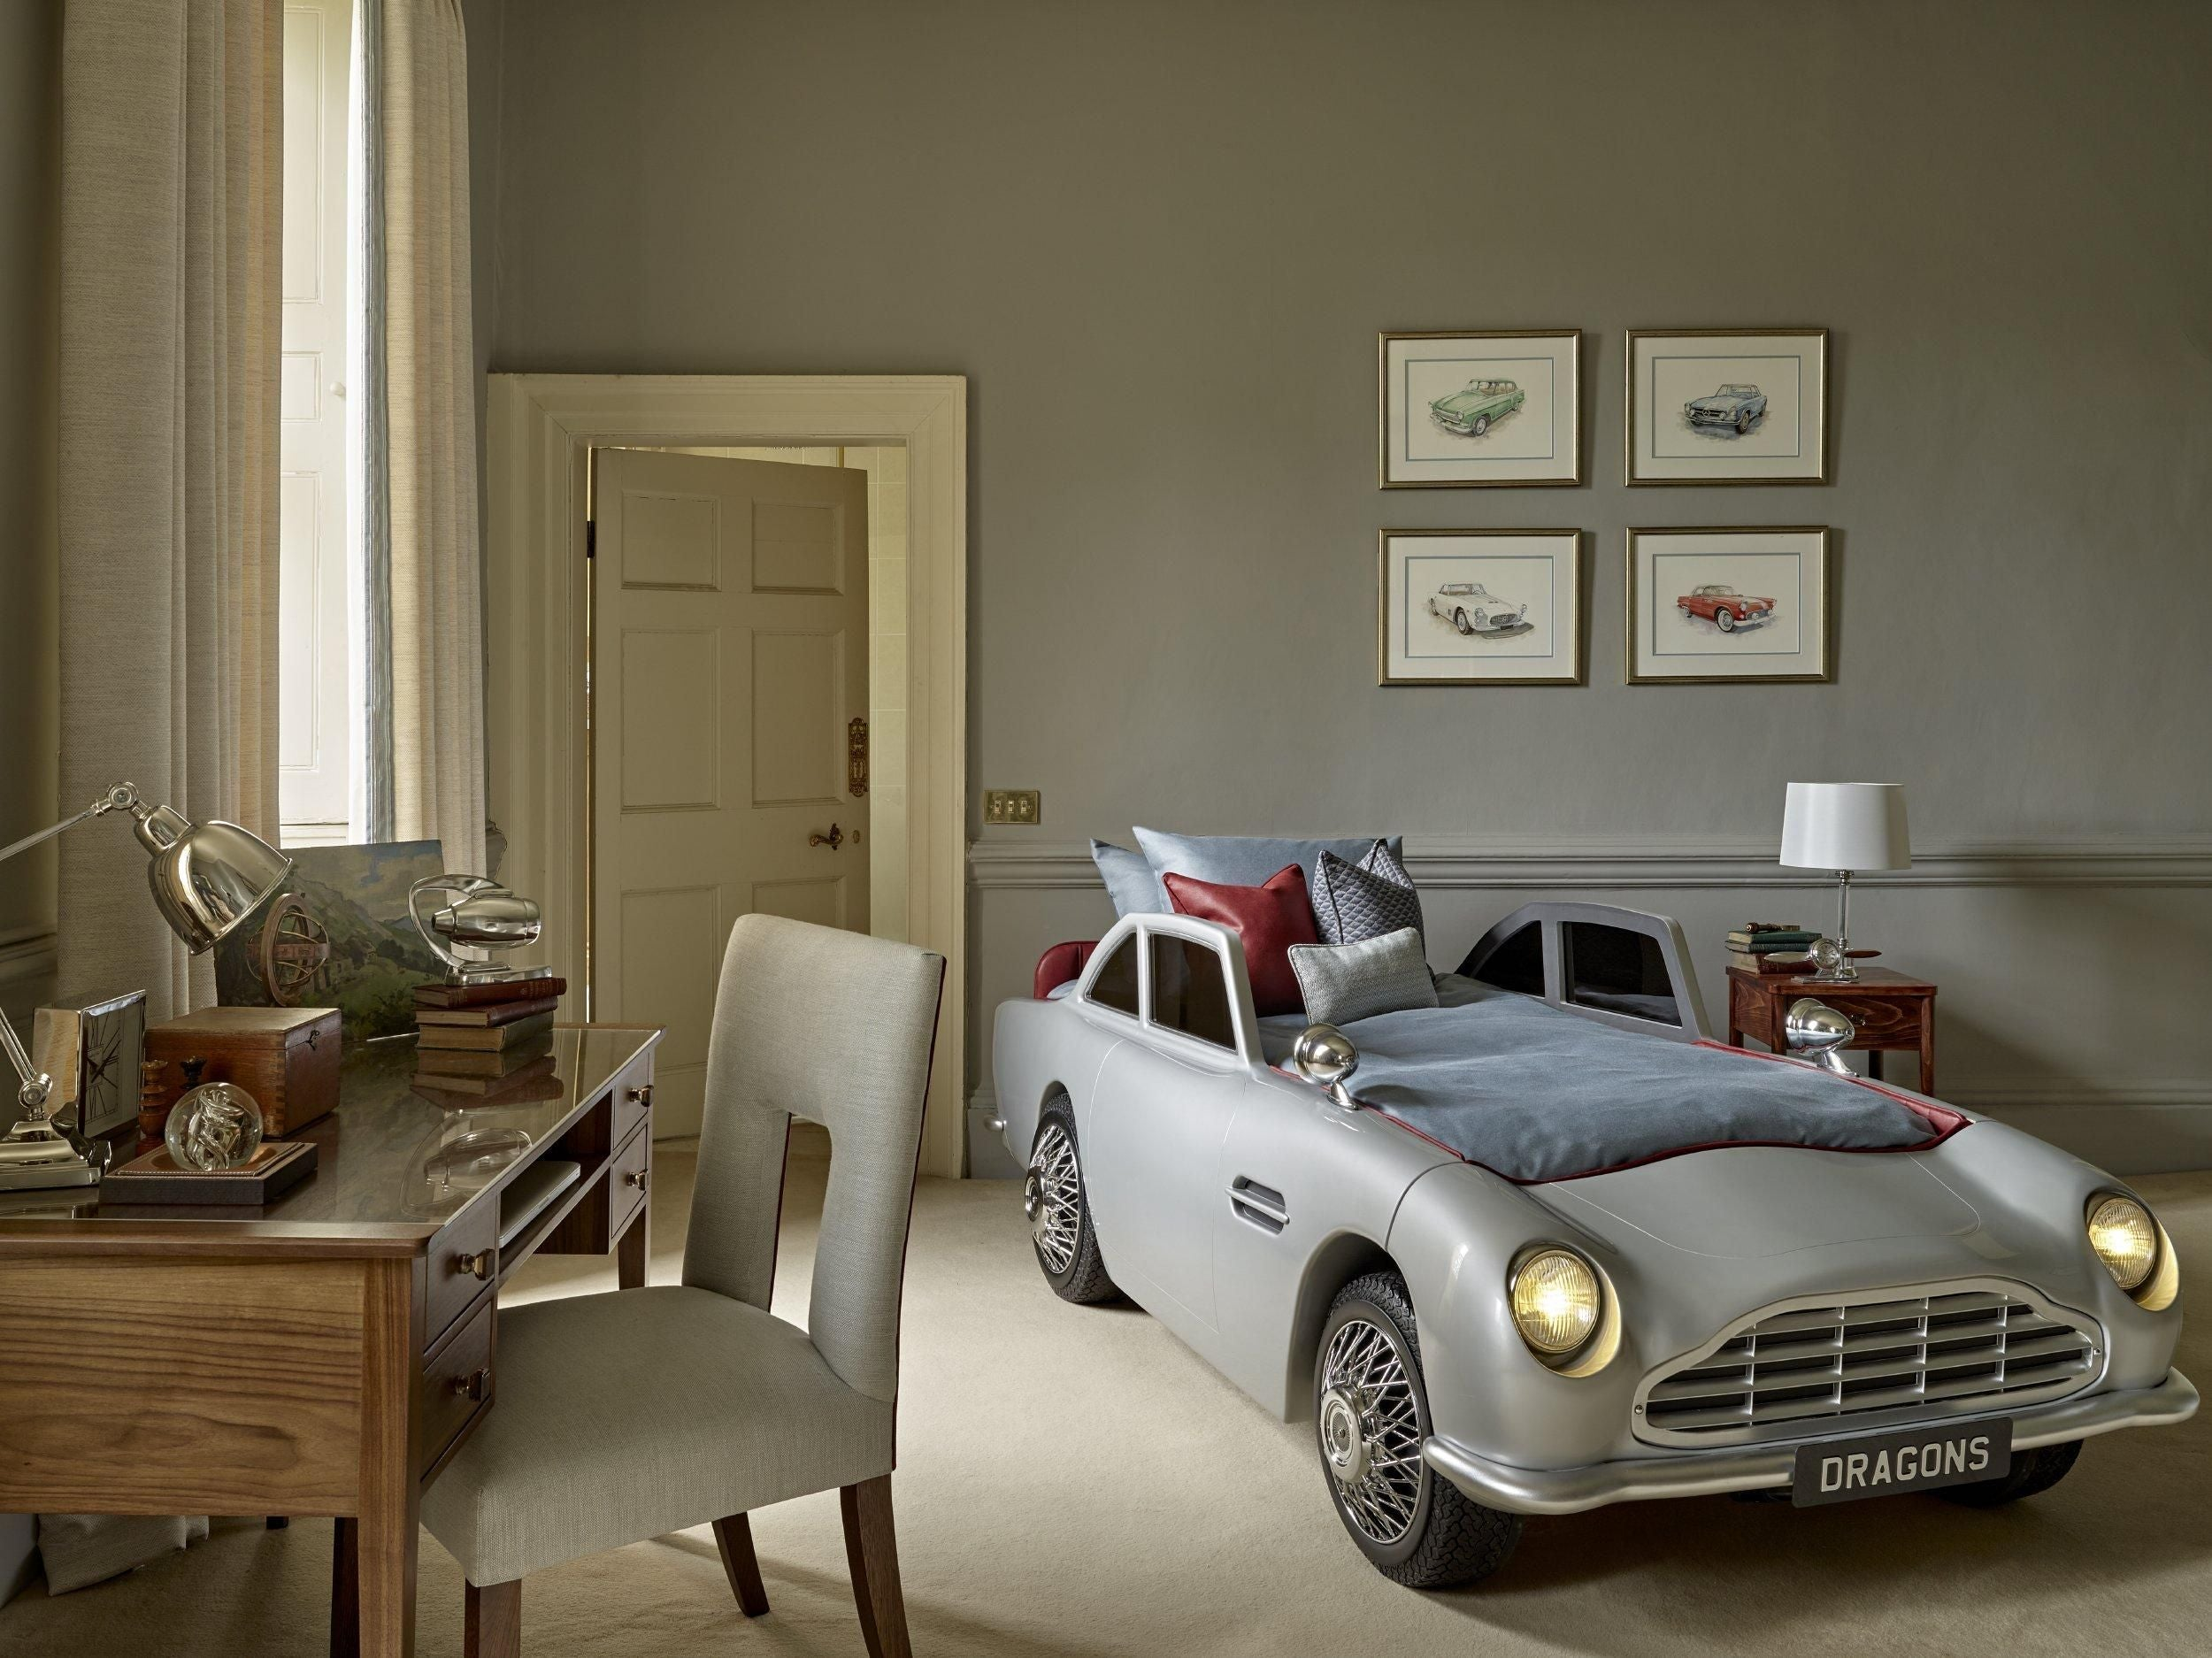 Vintage Car Bed | Bespoke beds from Dragons of Walton Street